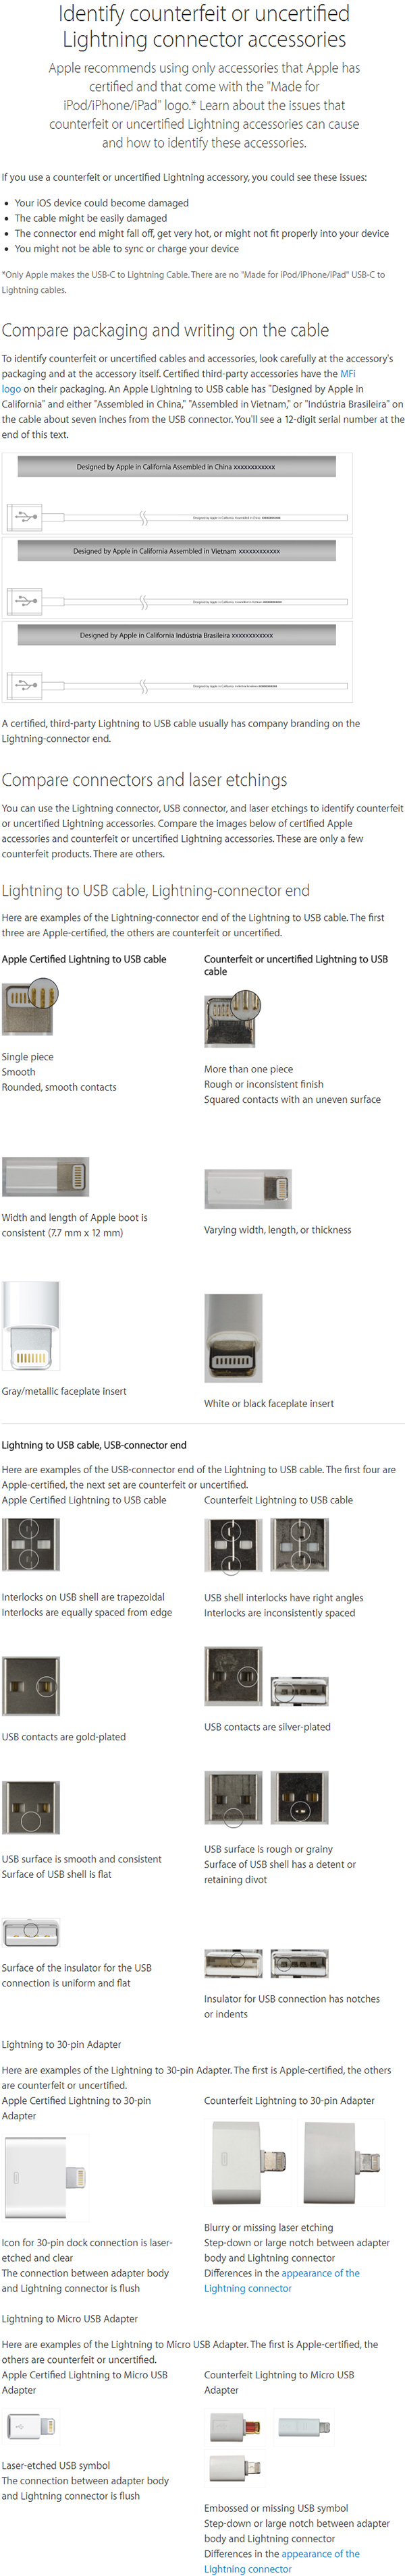 apple-counterfiet-lightning-connectors